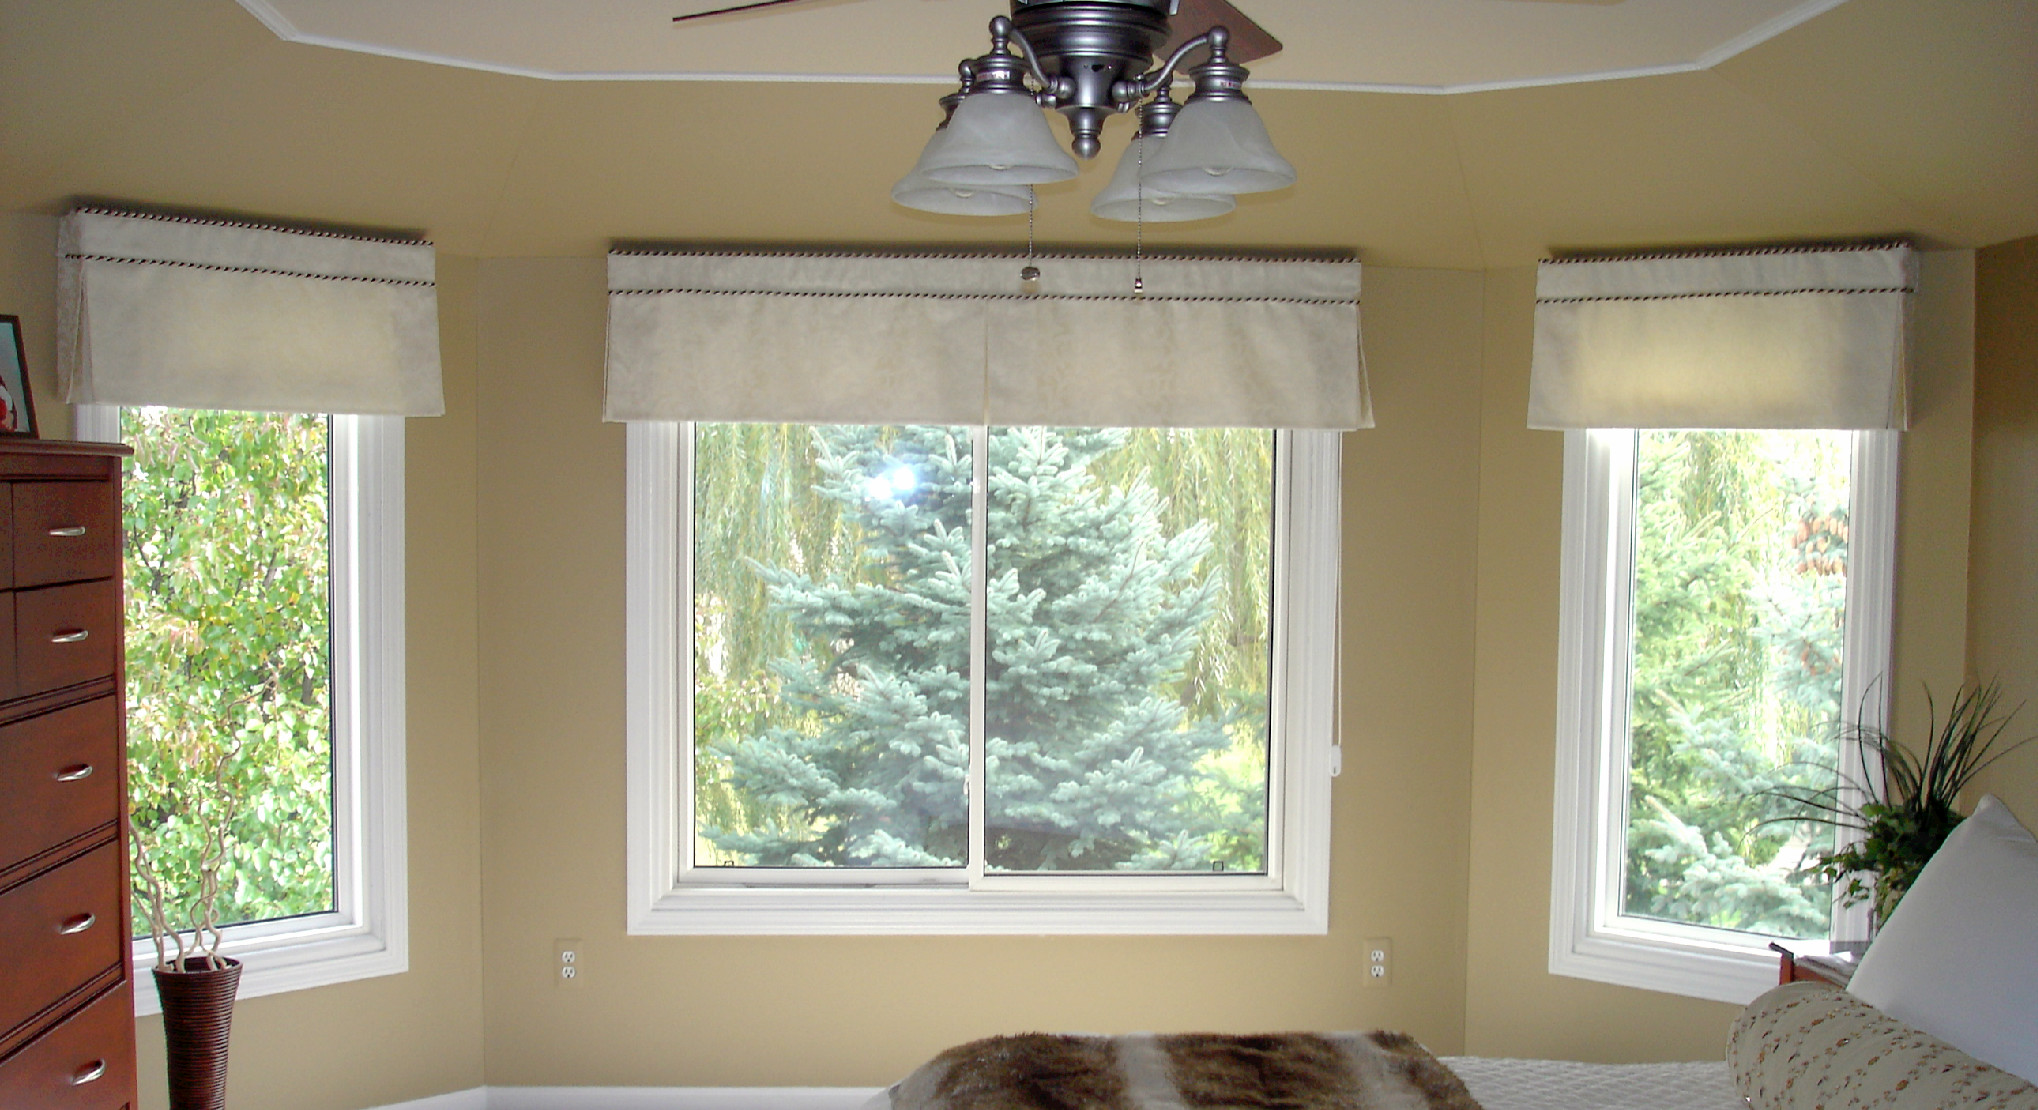 valances window treatments ideas window treatments